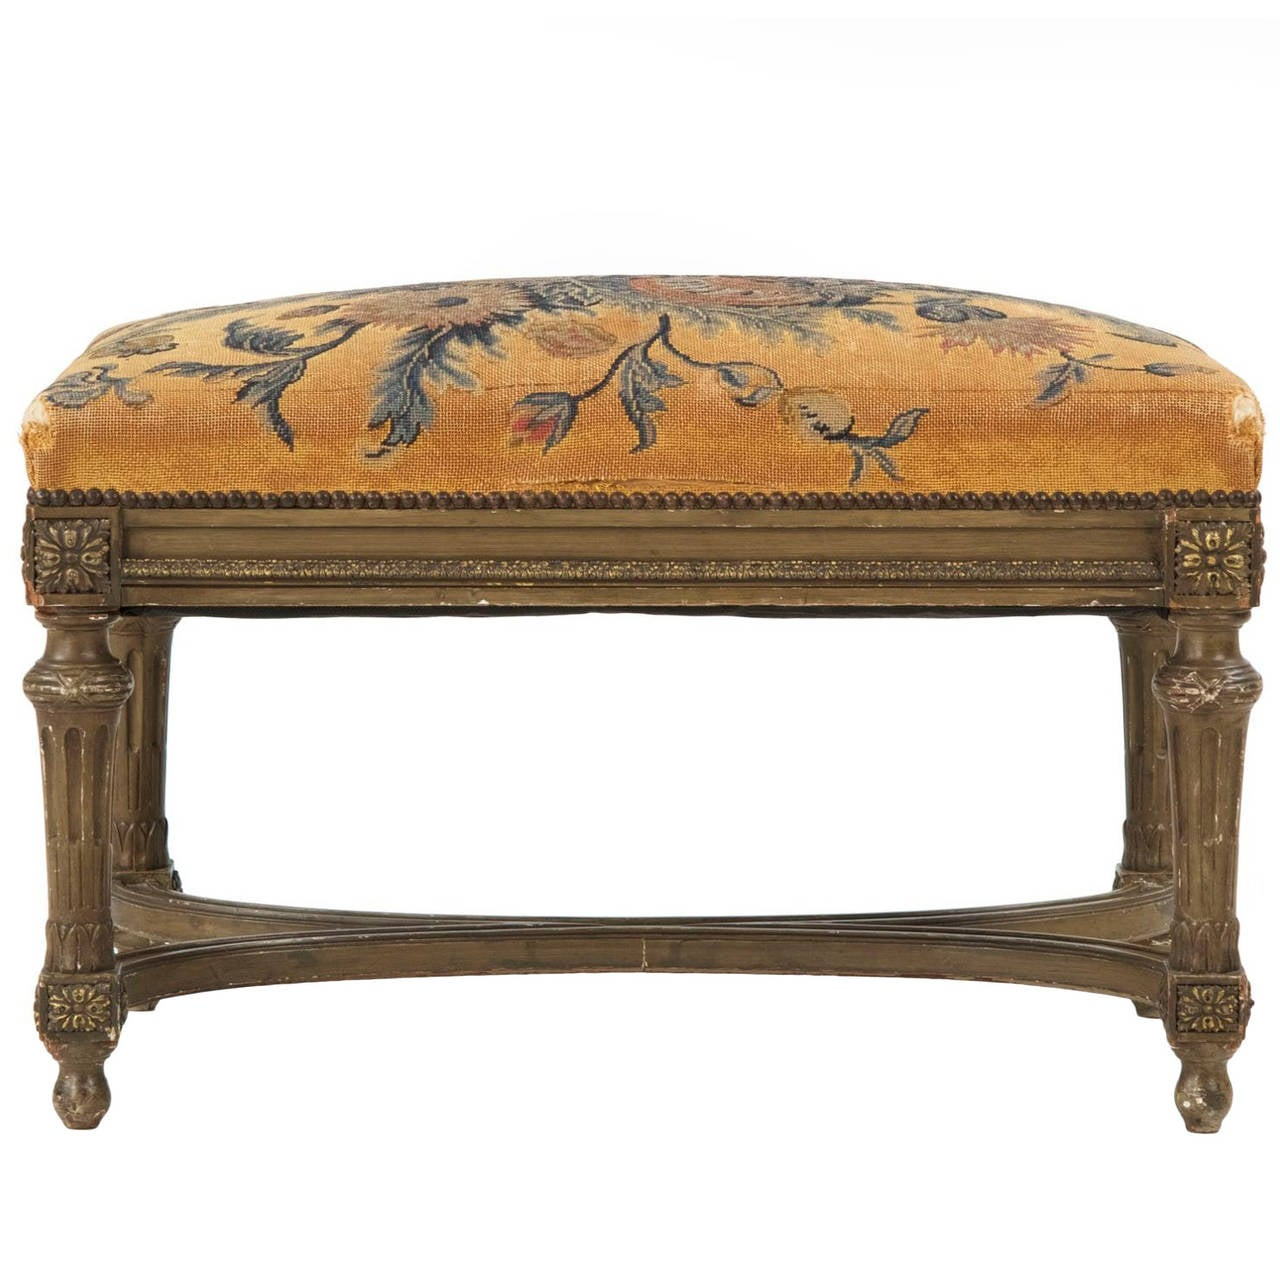 French Louis XVI Style Painted Antique Foot Stool Ottoman, 19th Century 1